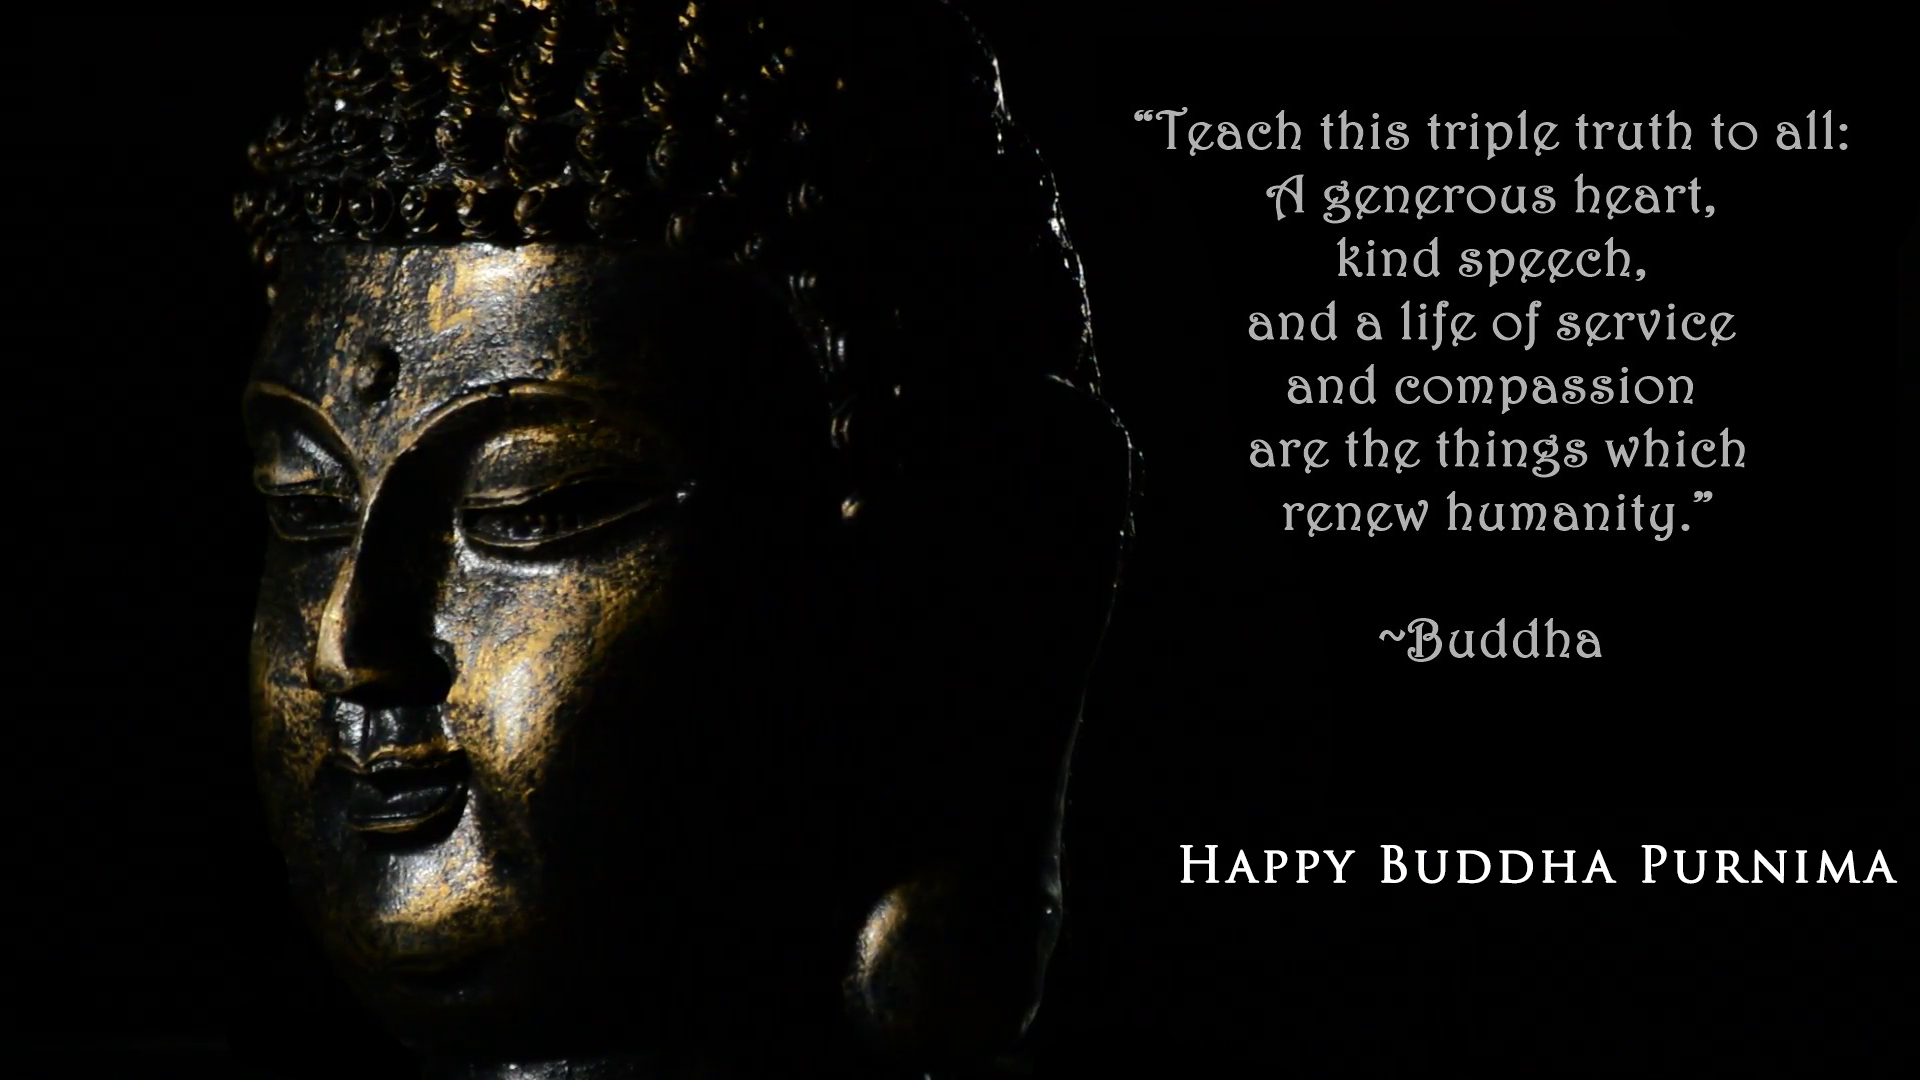 Buddha Purnima Hd Wallpapers Free Download For Iphone Mobile